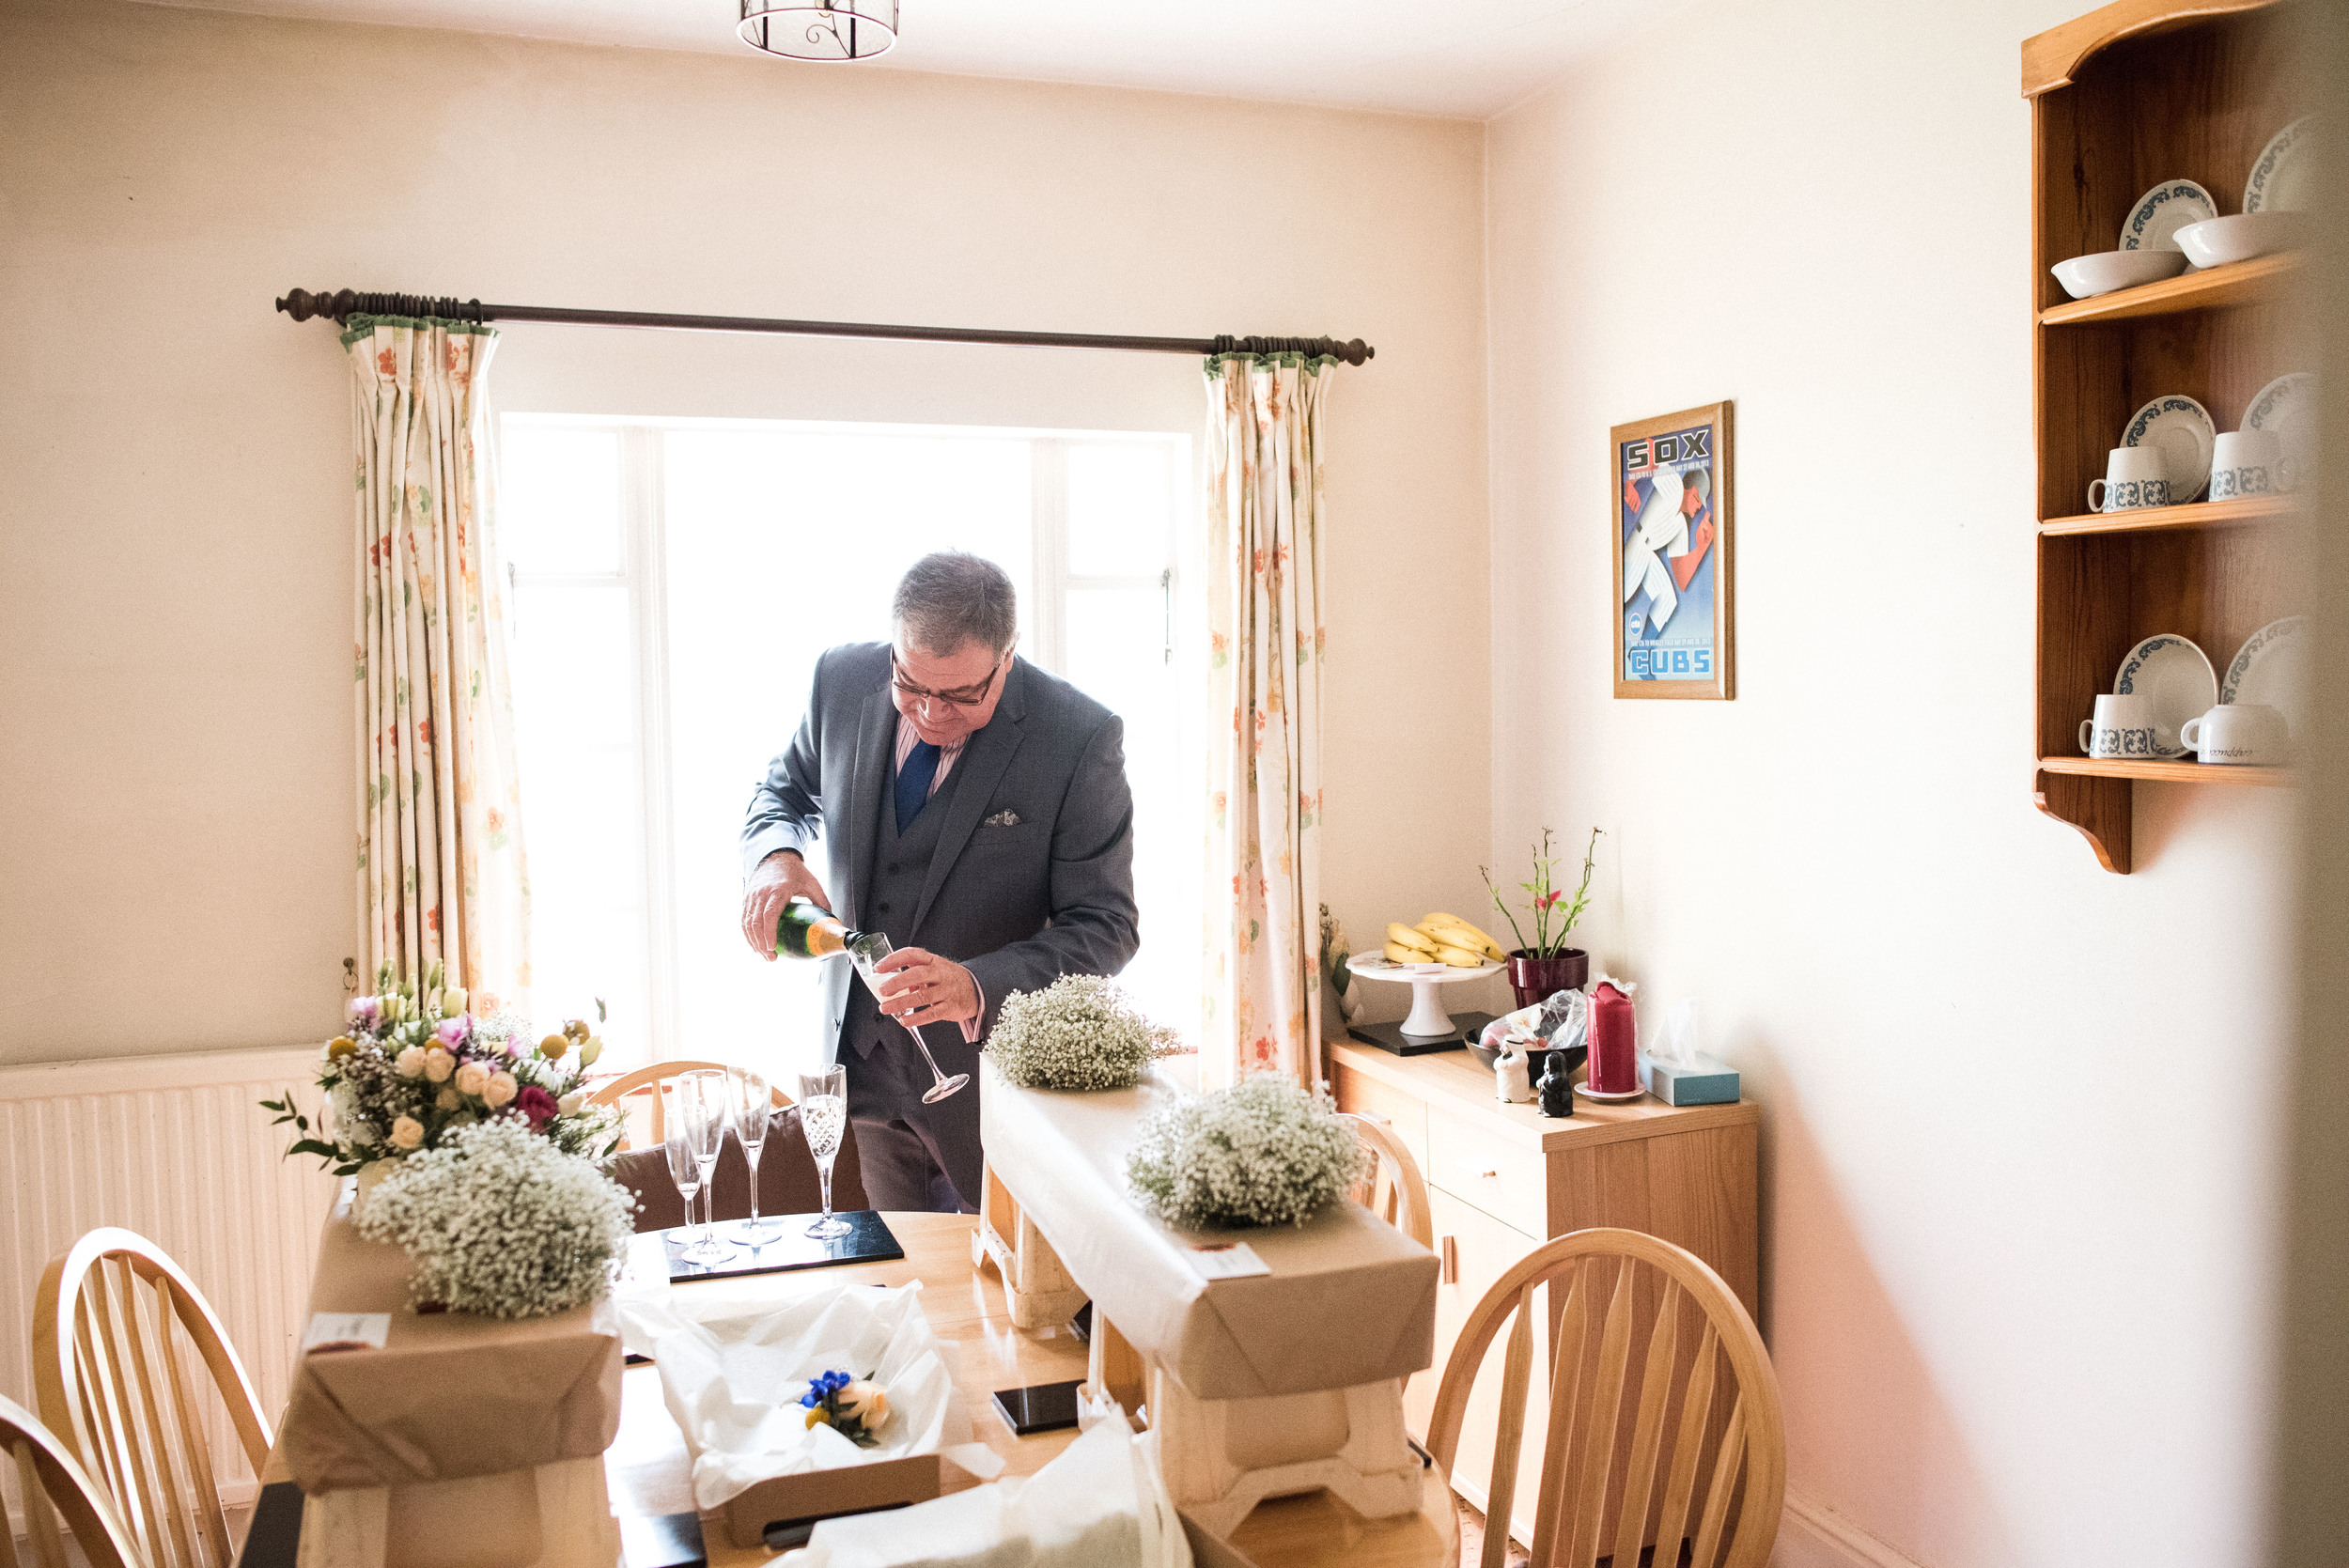 father pouring champagne - ufton court wedding photographer